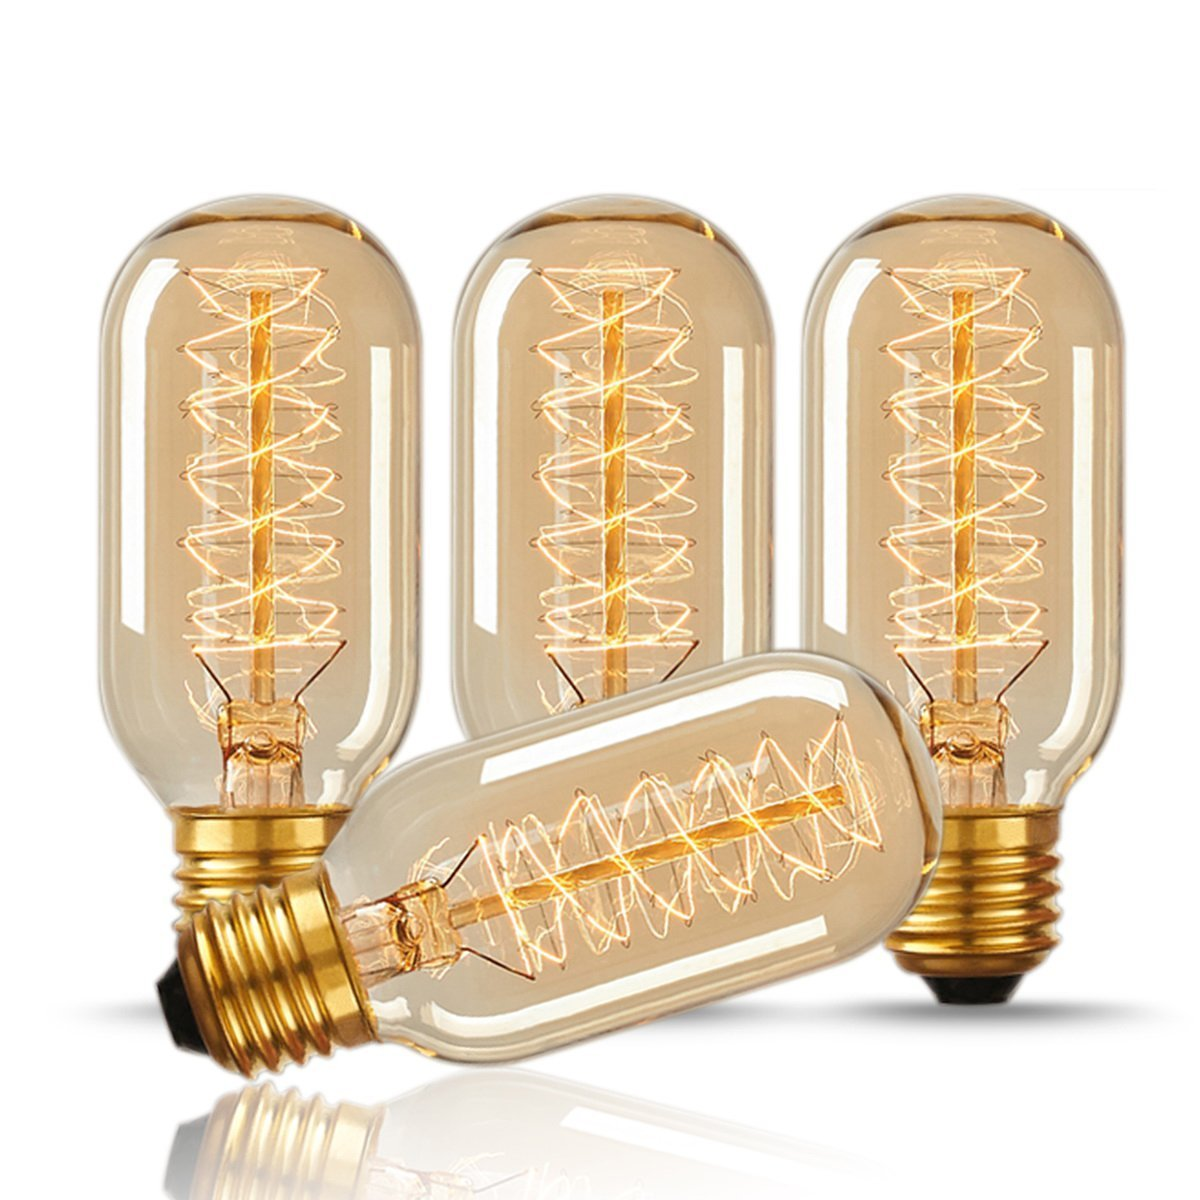 BOKT st64 edison bulb led e27 love dimmable vintage filament retro lamp light fixture 220v 4w lighting 2300k amber gold clear glass